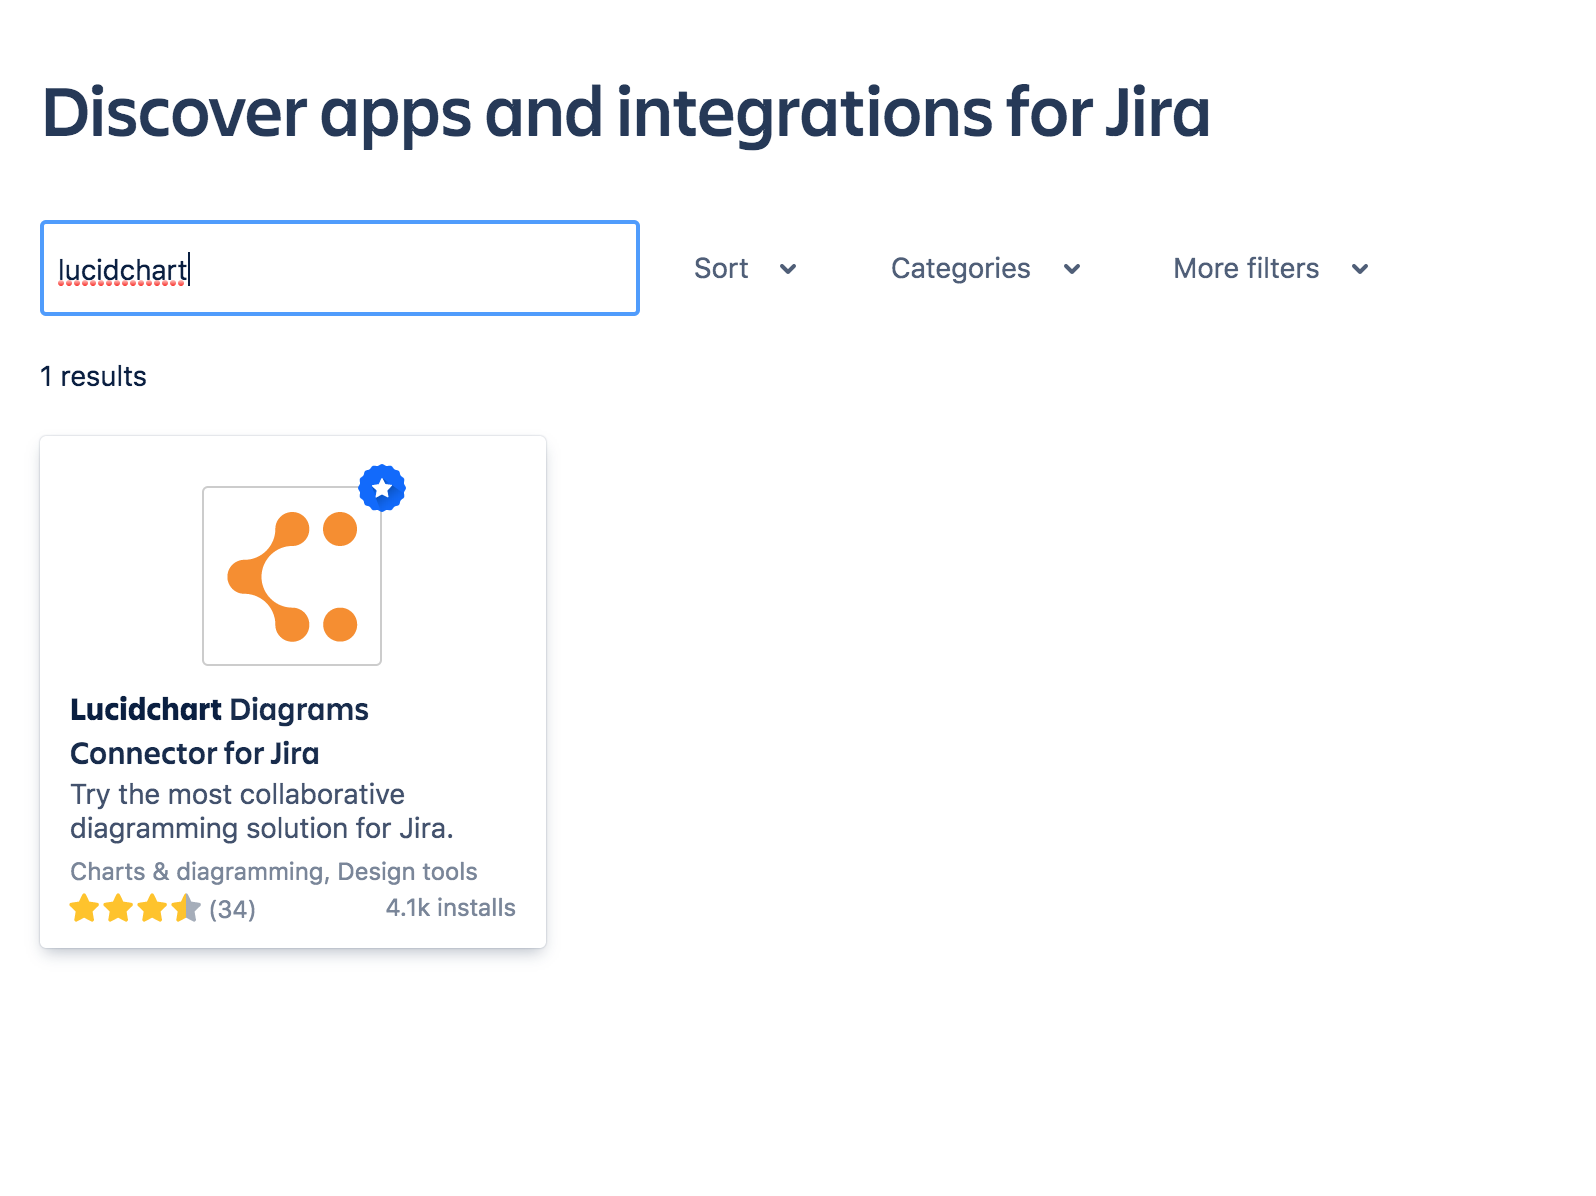 jira_cloud_search_marketplace.png